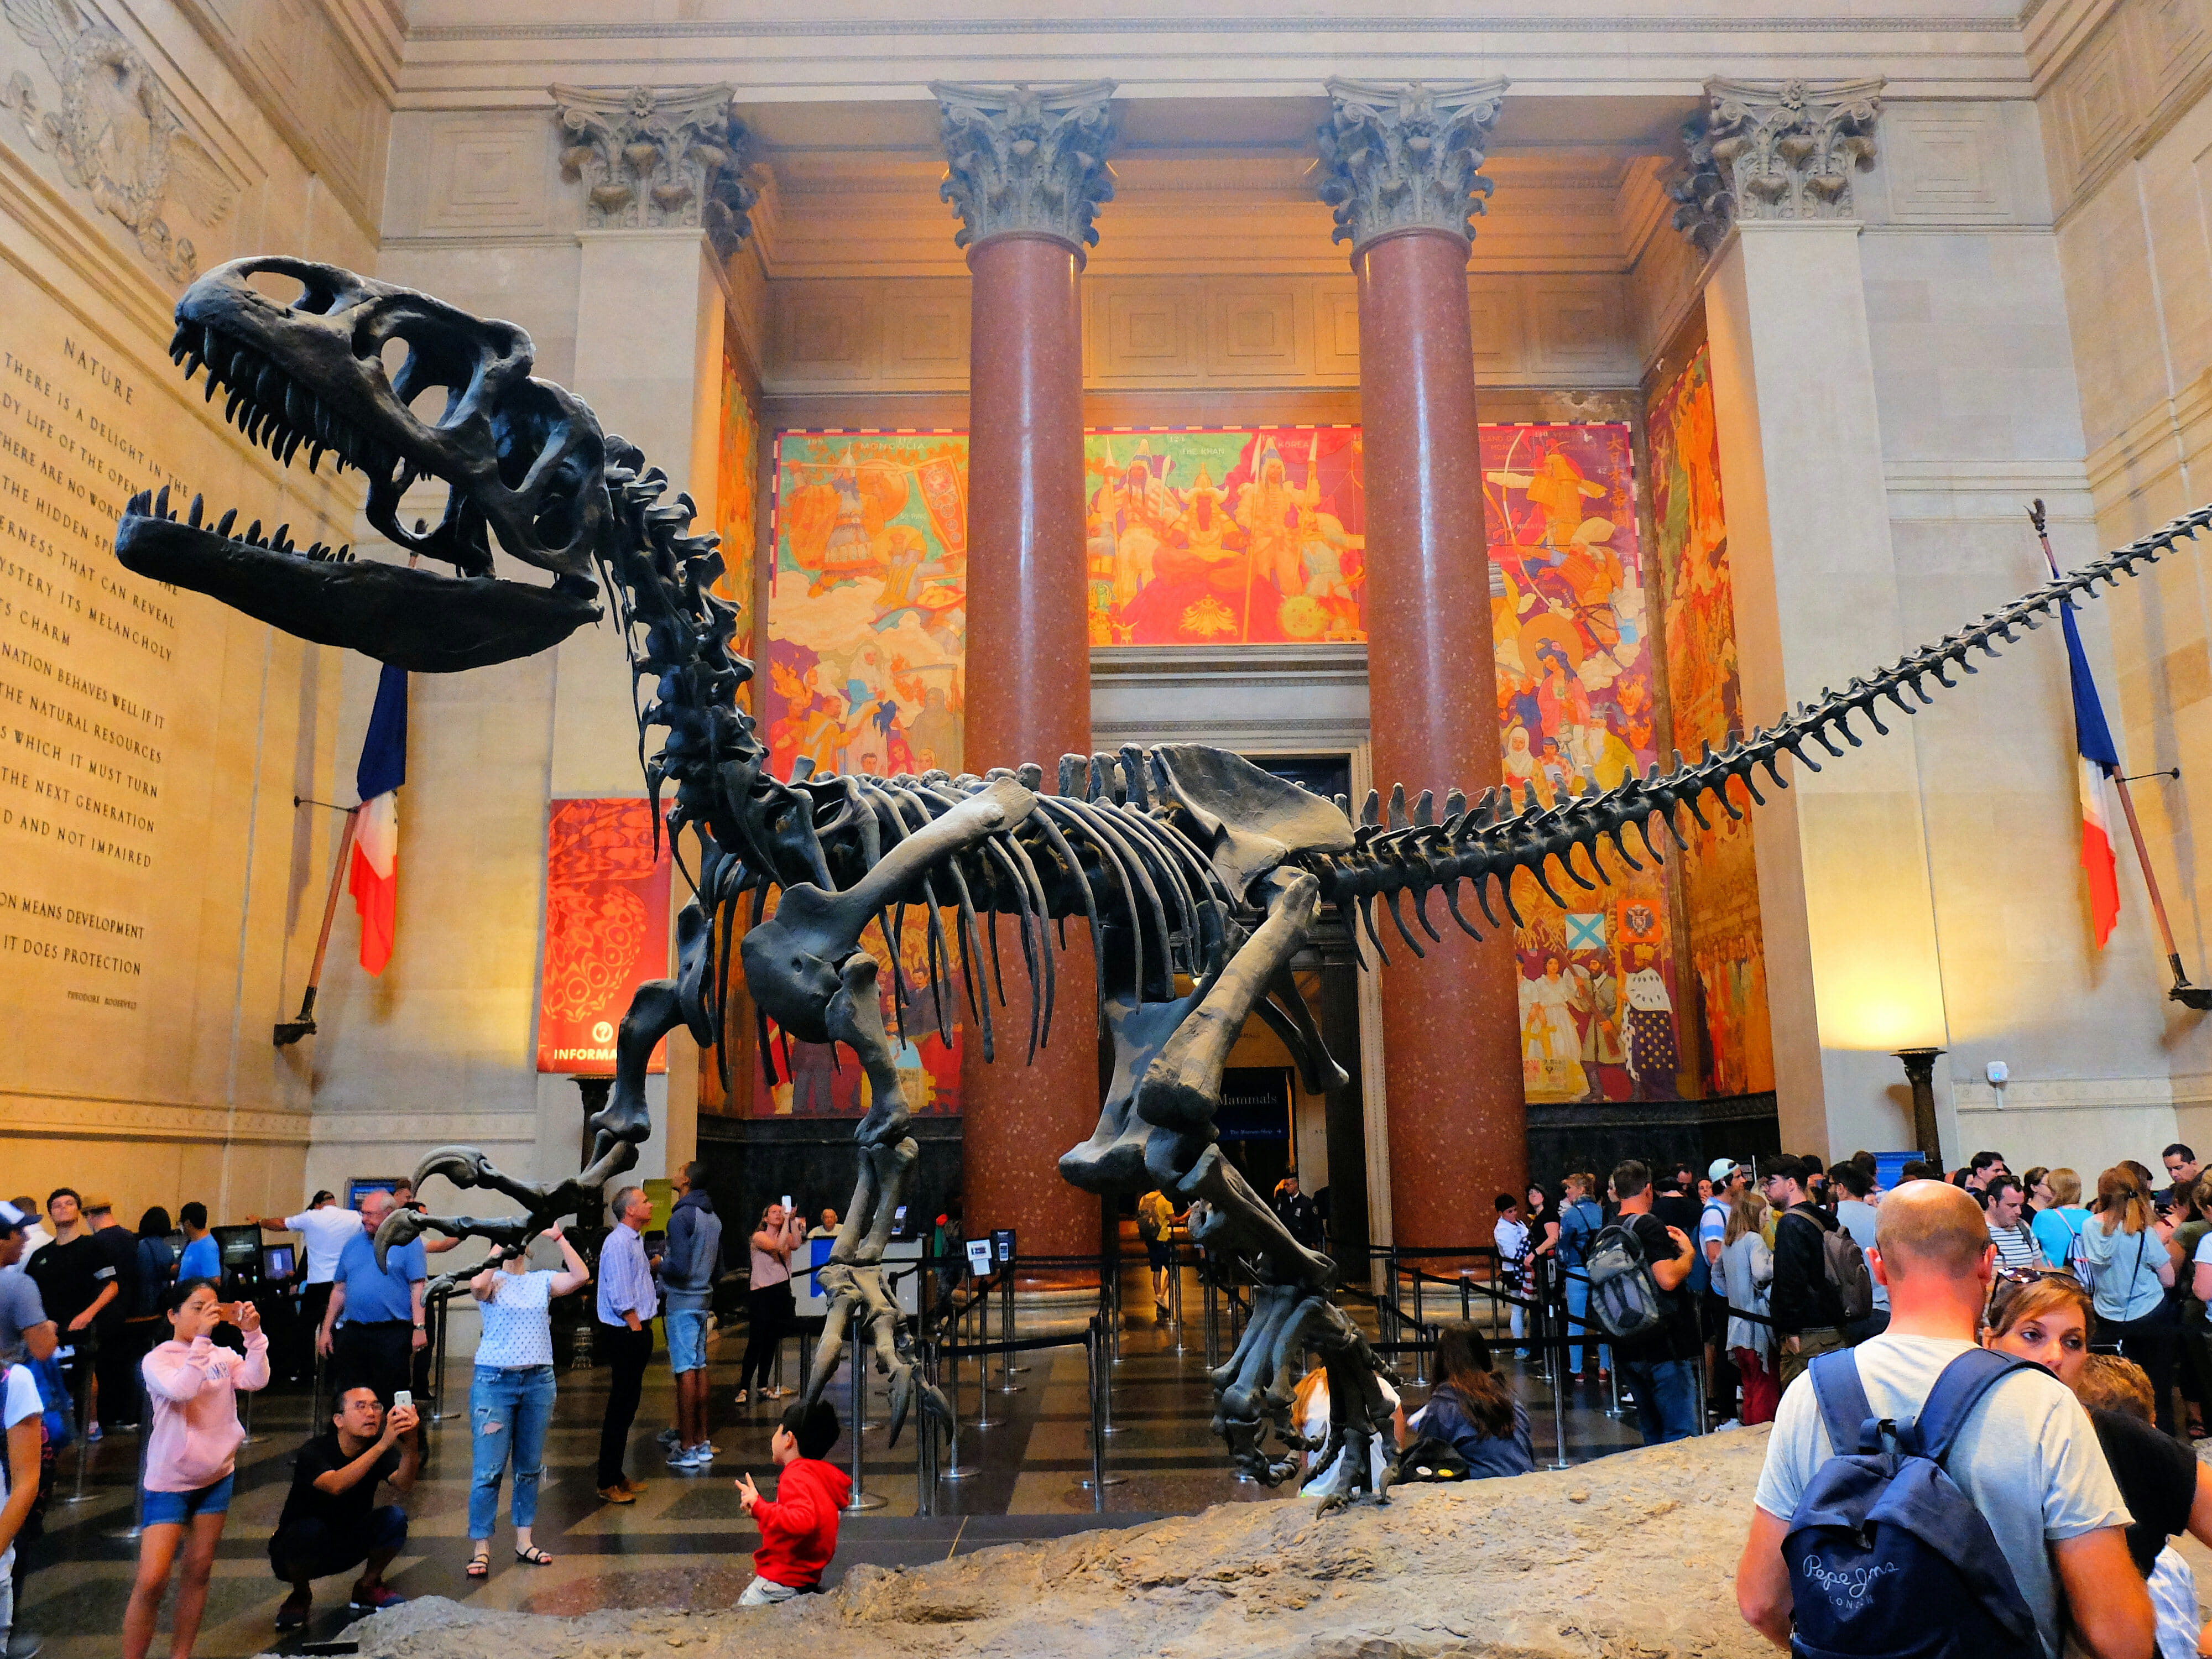 American Museum of Natural History in New York – T Rex – High Quality Wallpaper